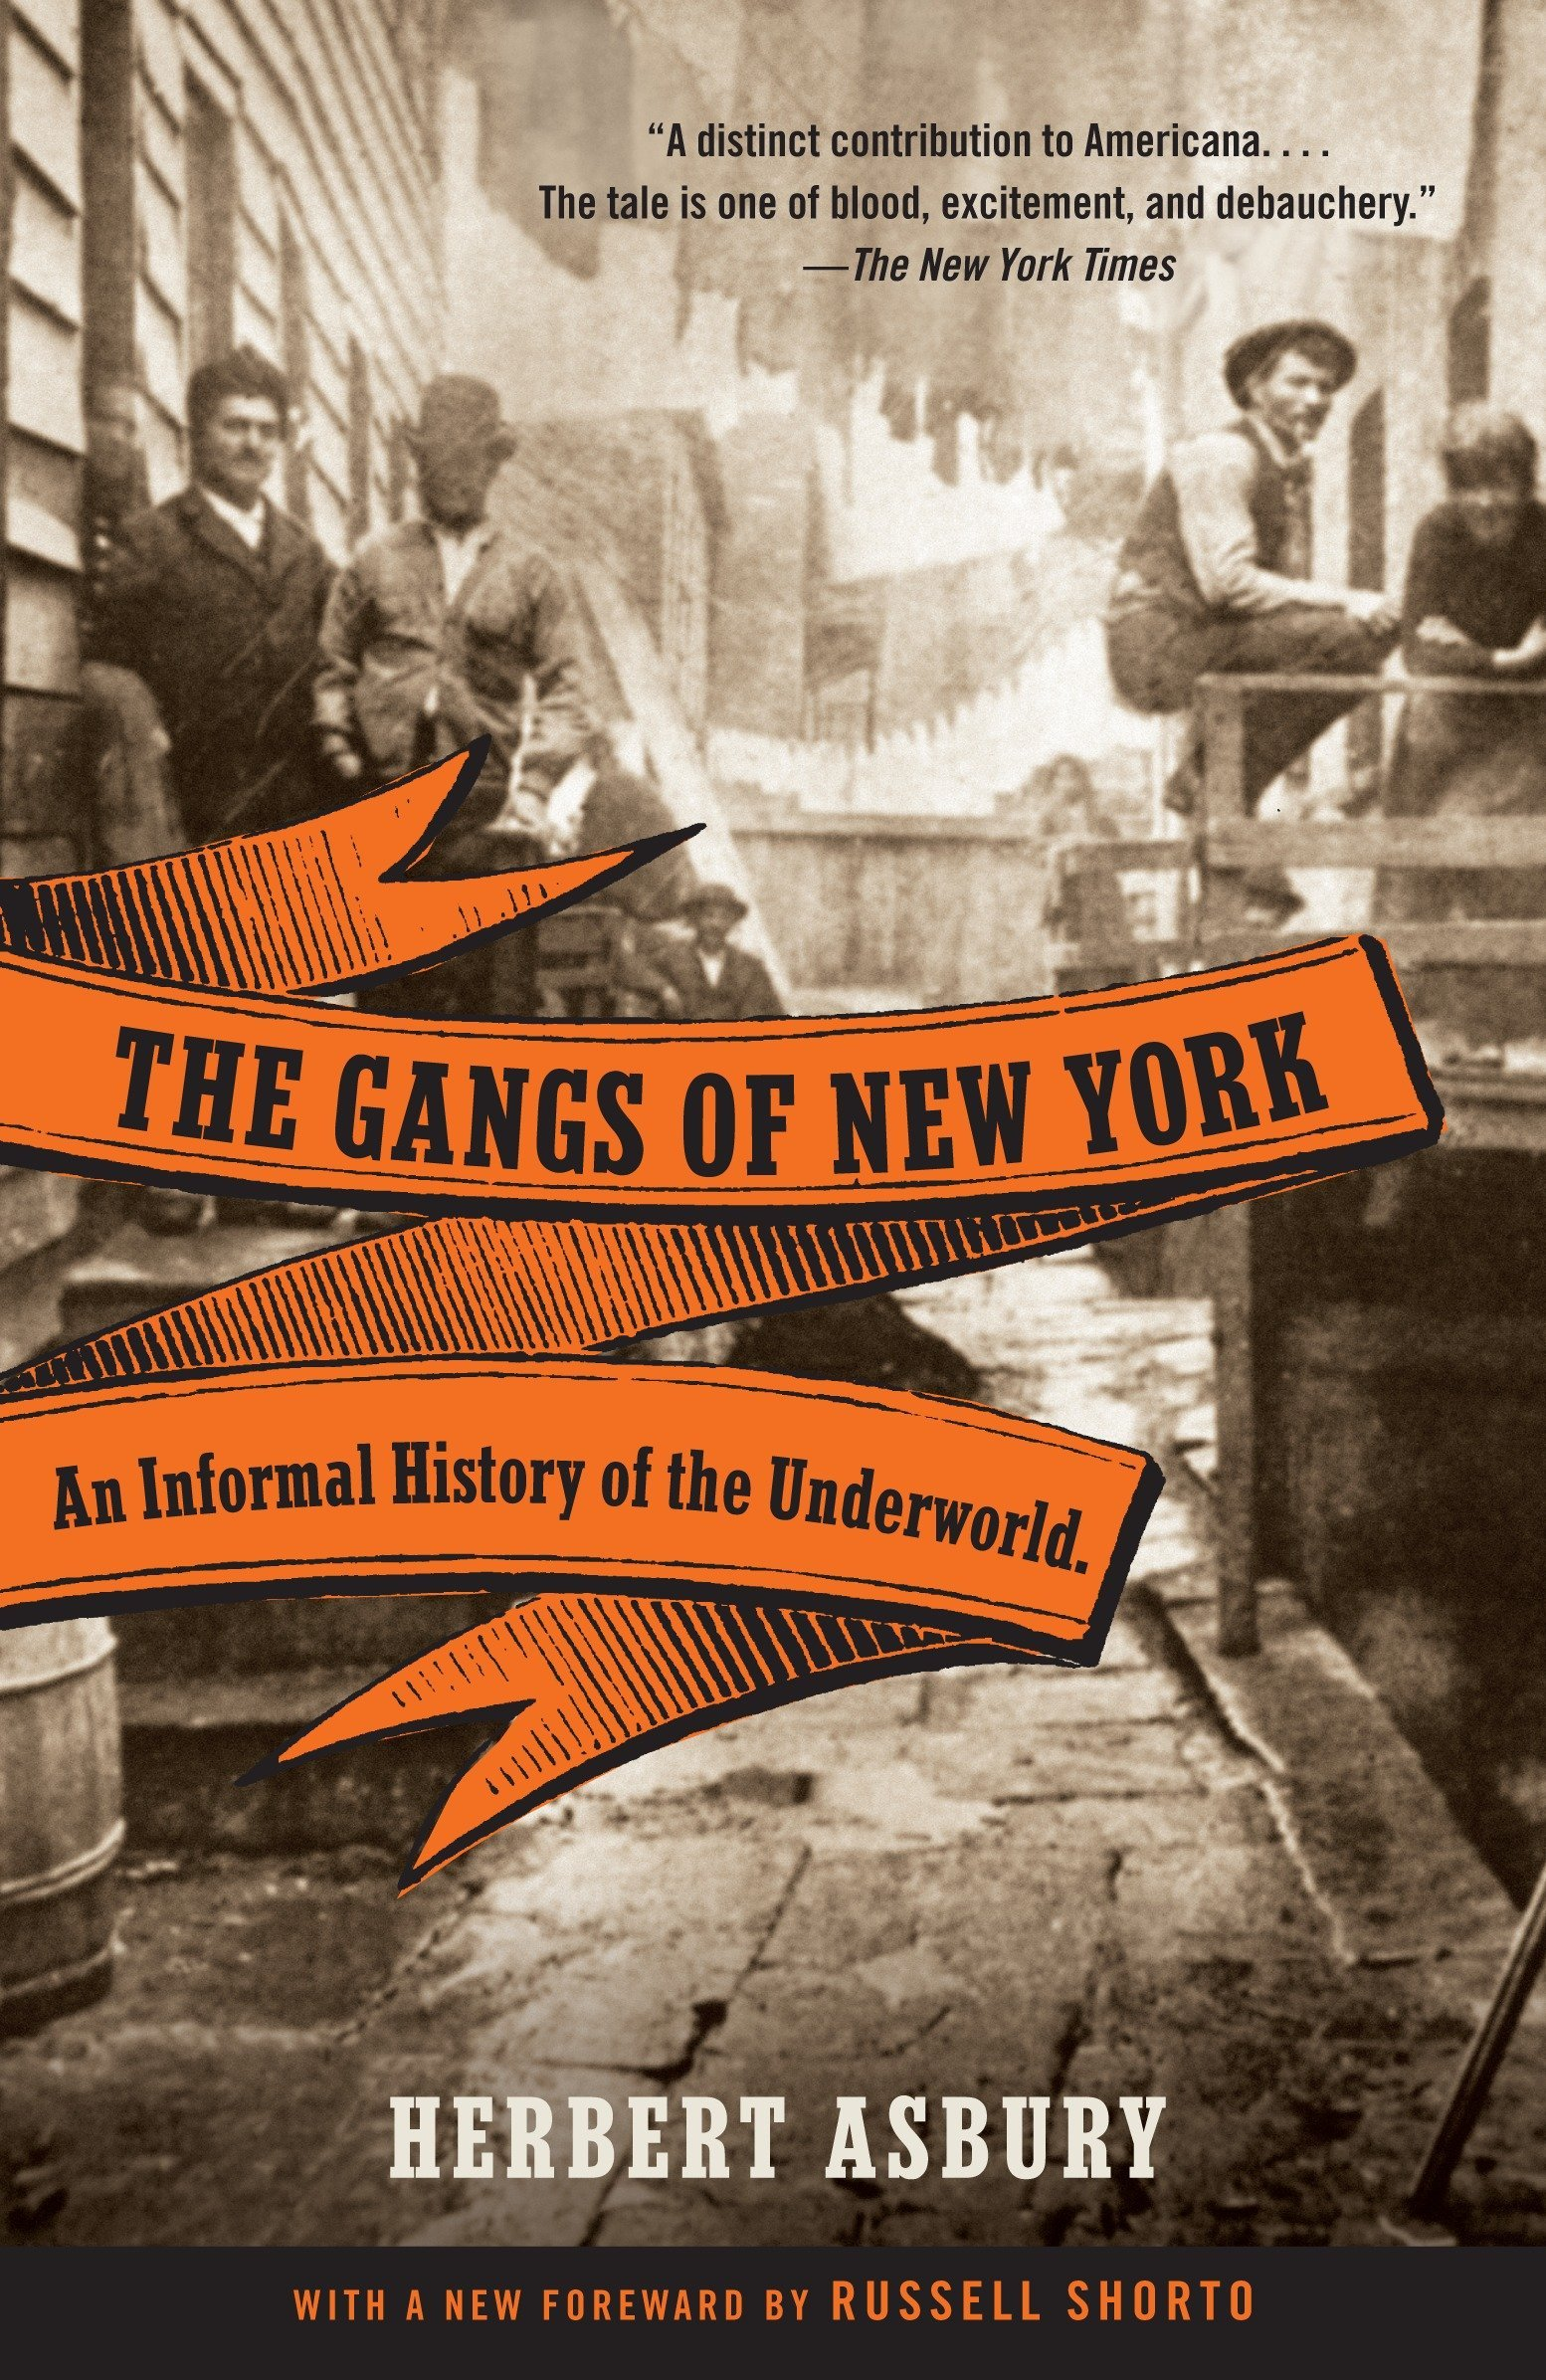 The Gangs of New York: An Informal History of the Underworld Vintage: Amazon.es: Herbert Asbury: Libros en idiomas extranjeros